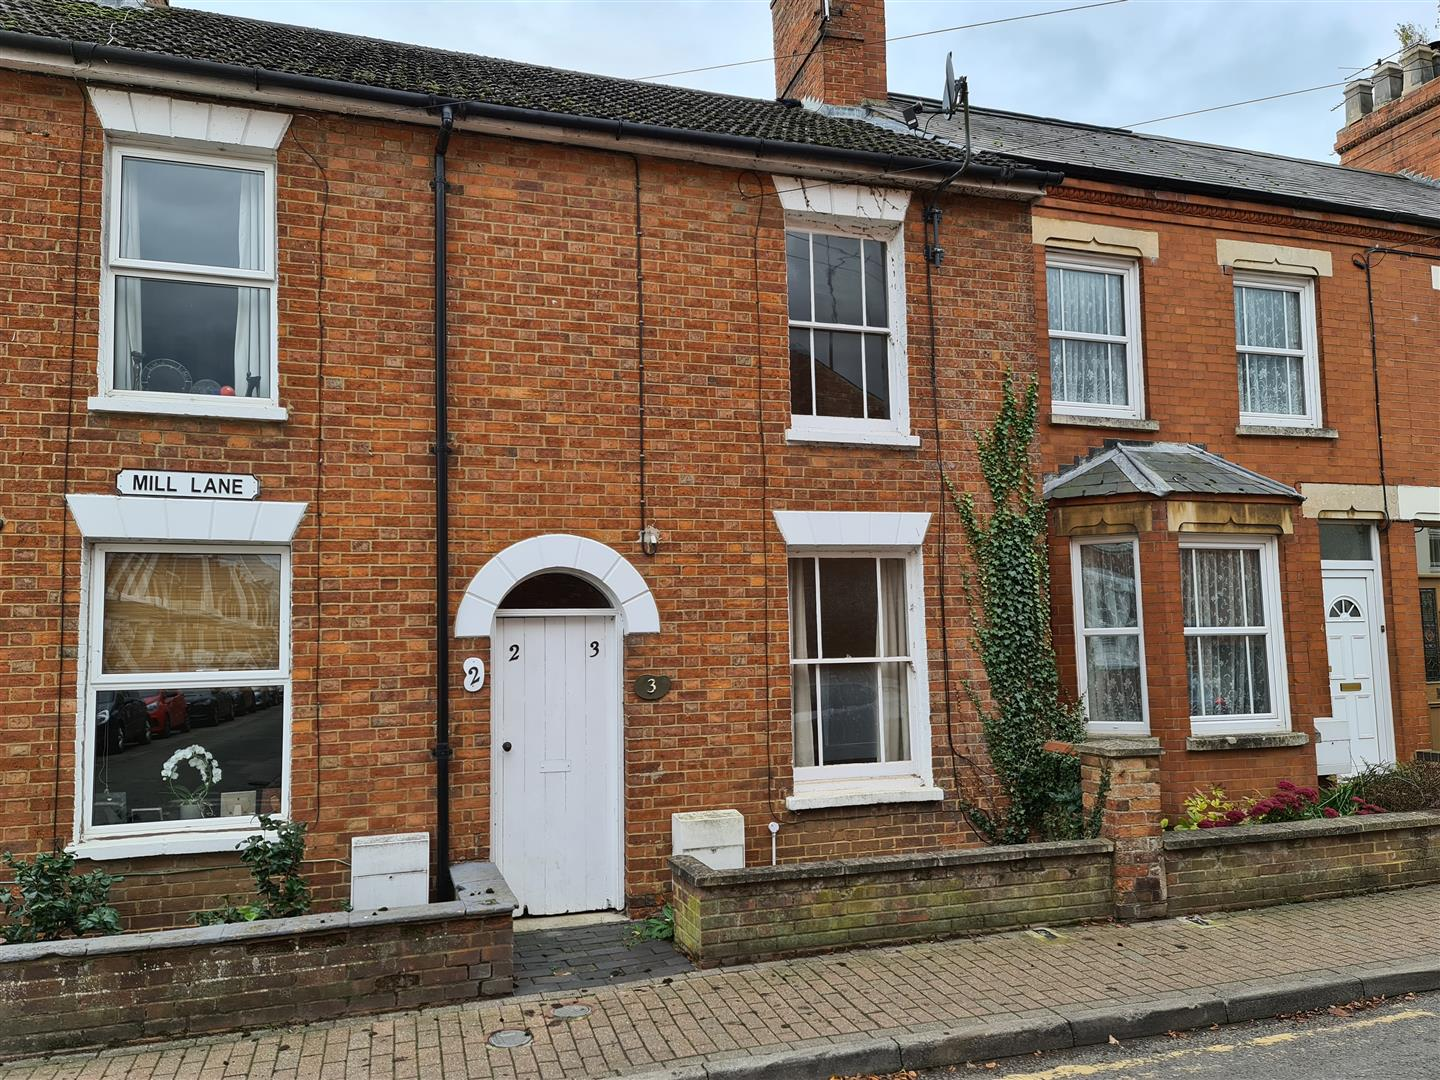 Charming Two bedroom property in the ever popular area of Stony Stratford. The property comprises of Living Area, Kitchen, Utility, Bathroom, Bedroom 1 & Bedroom 2. Great location only 2 minutes walk from the high street and available early September